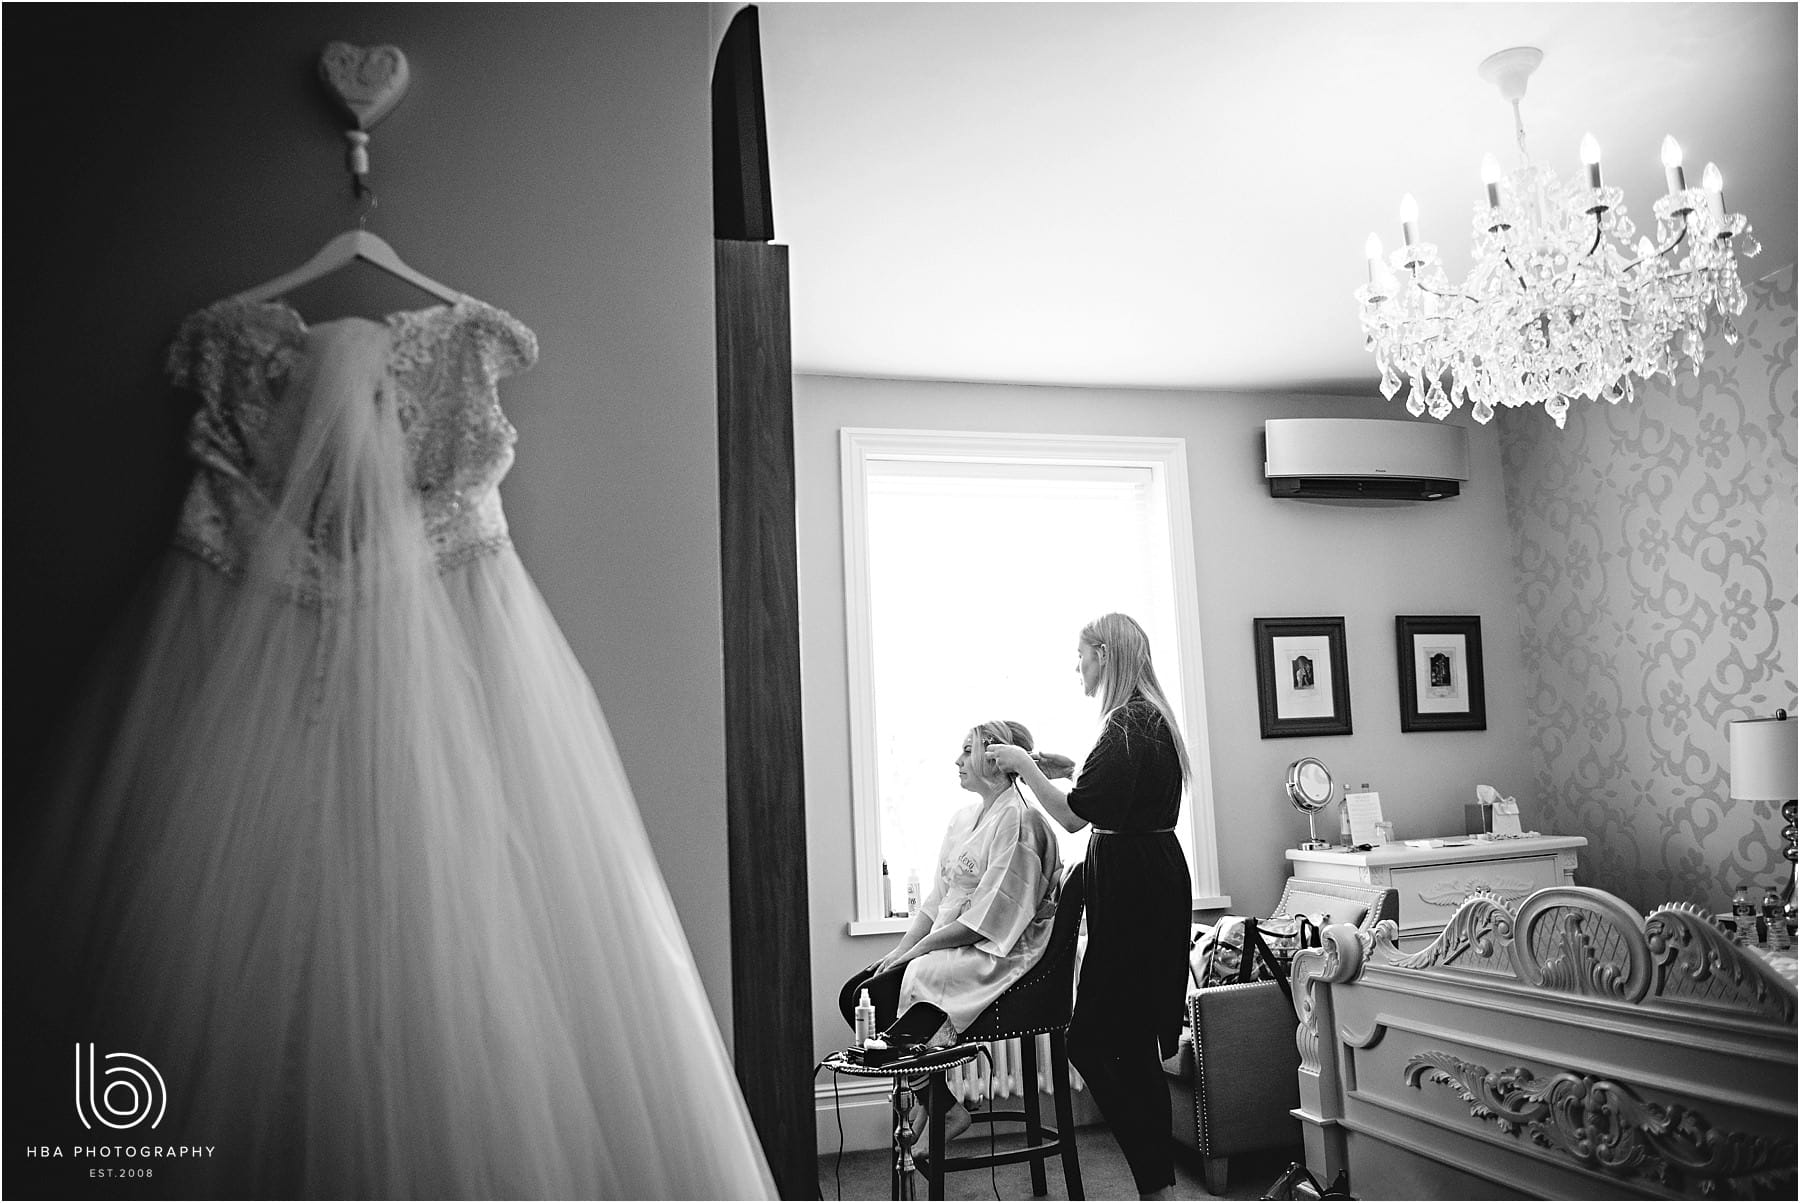 the bride having her gair done